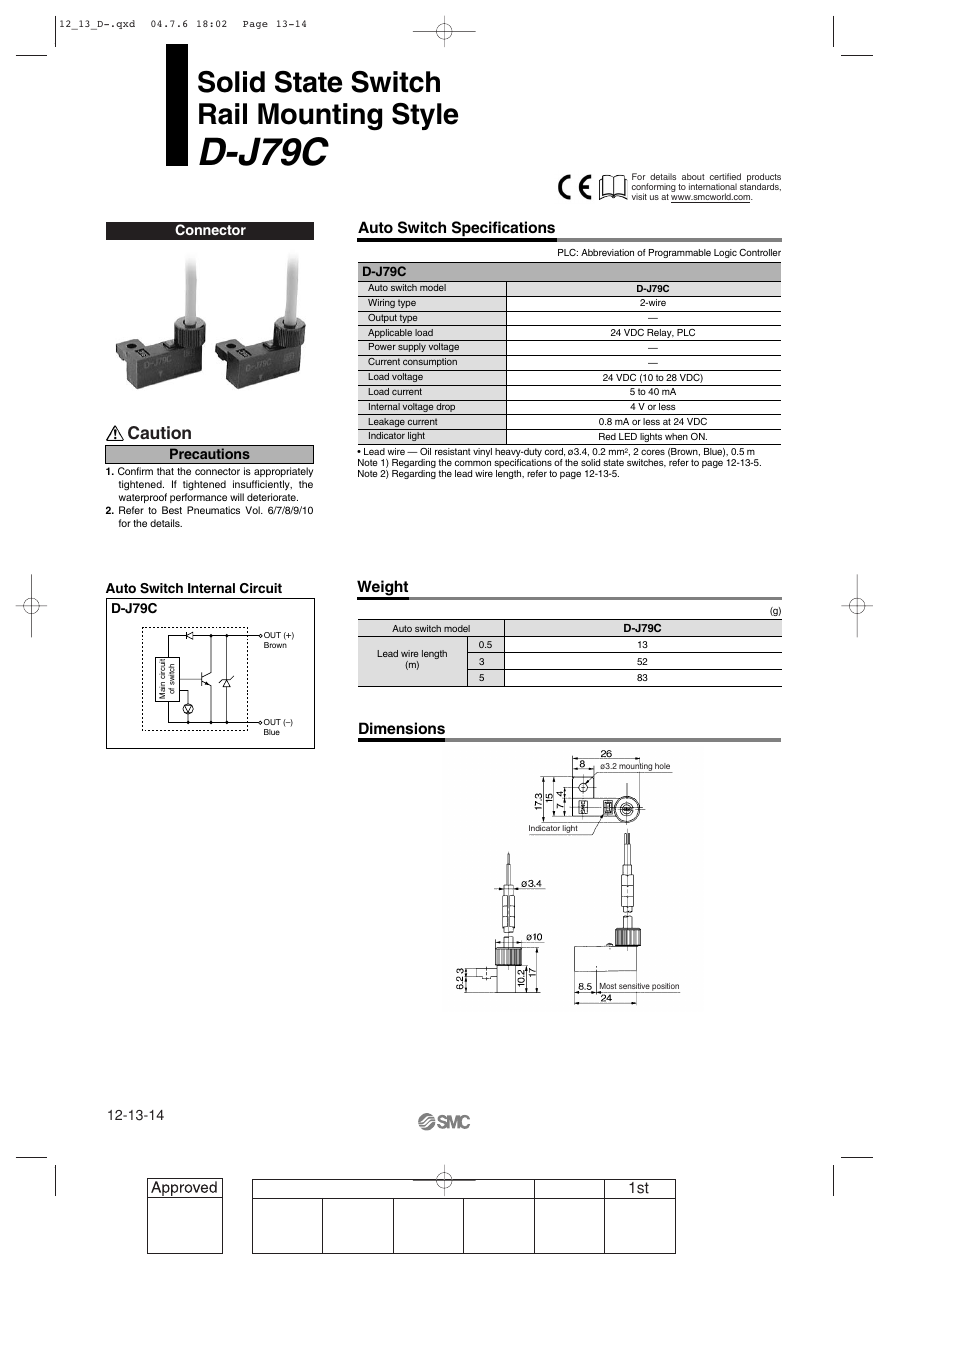 D-j79c rail mounting style, D-j79c, Solid state switch rail mounting style  | SMC Networks Reed Switch Solid State Switches User Manual | Page 14 / 27